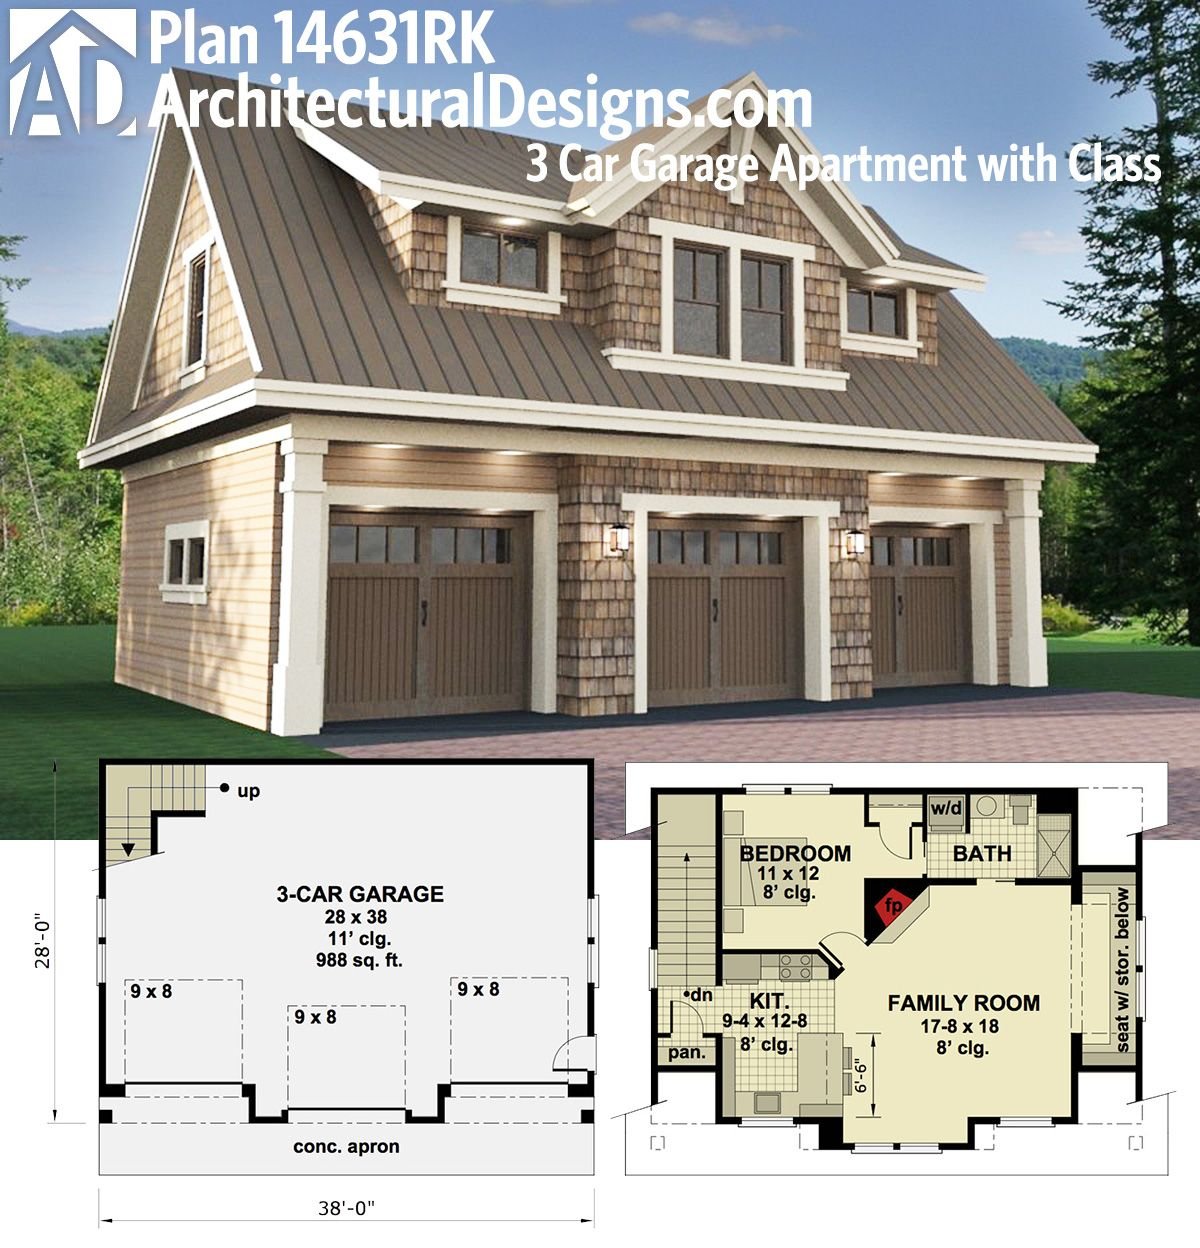 Plan 14631rk 3 car garage apartment with class carriage for 3 car garage blueprints